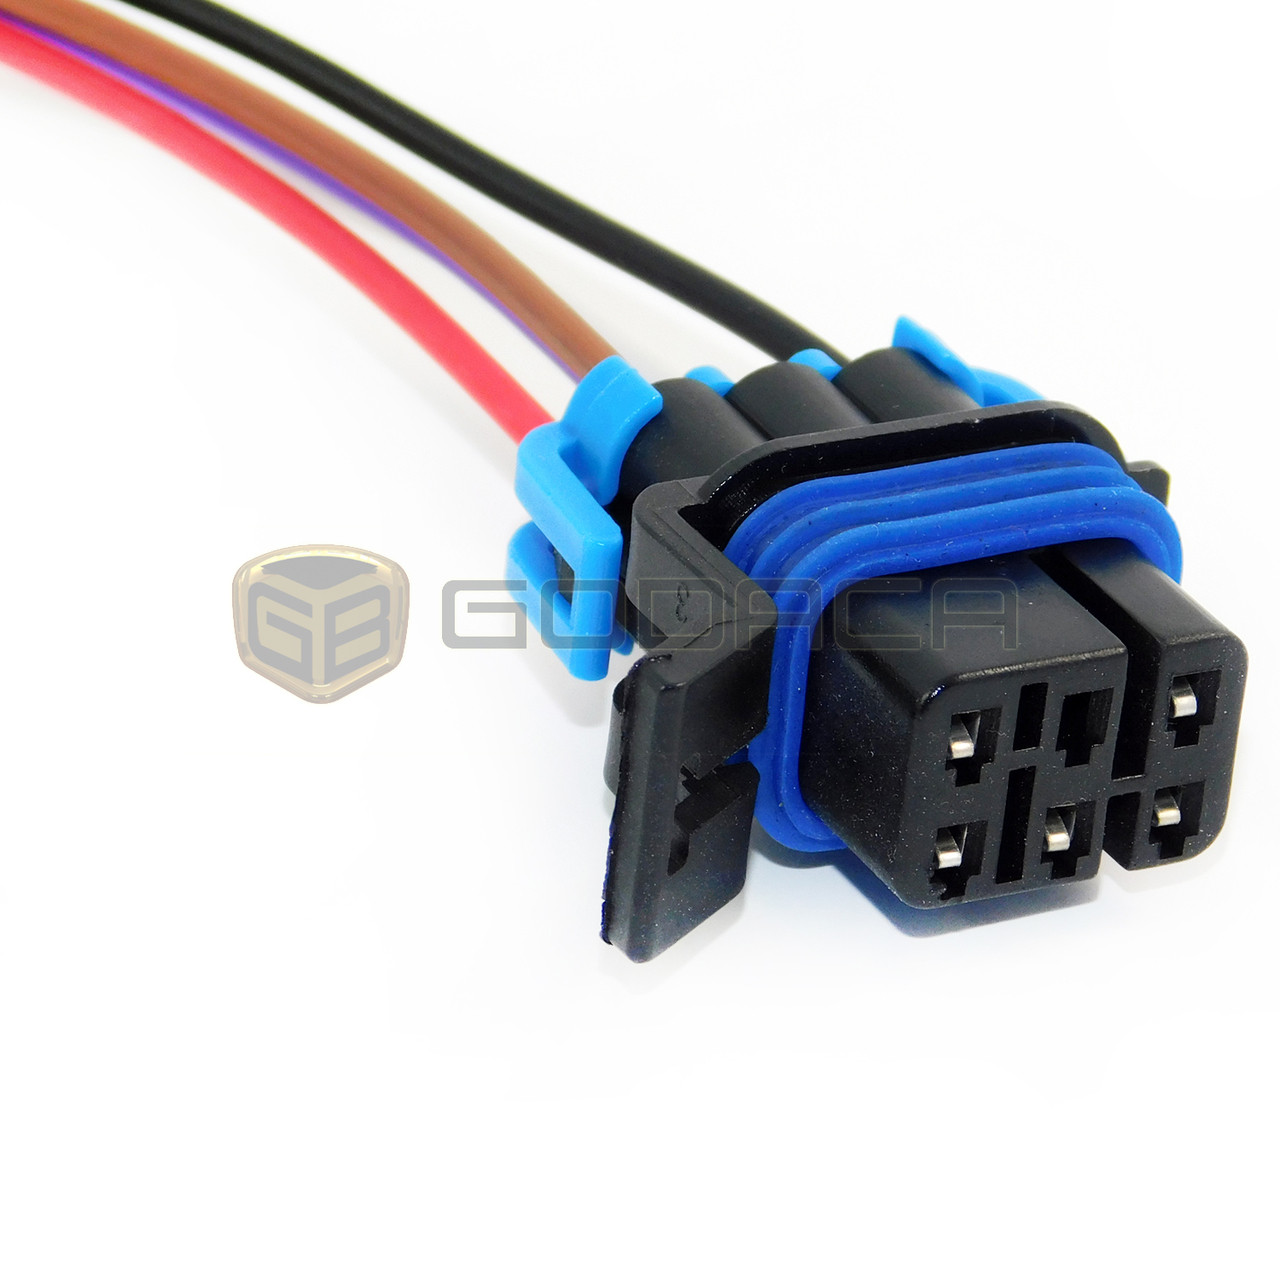 hight resolution of connector fuel pump sensor harness pigtail fpw4 gmc buick pontiac chevrolet godaca llc